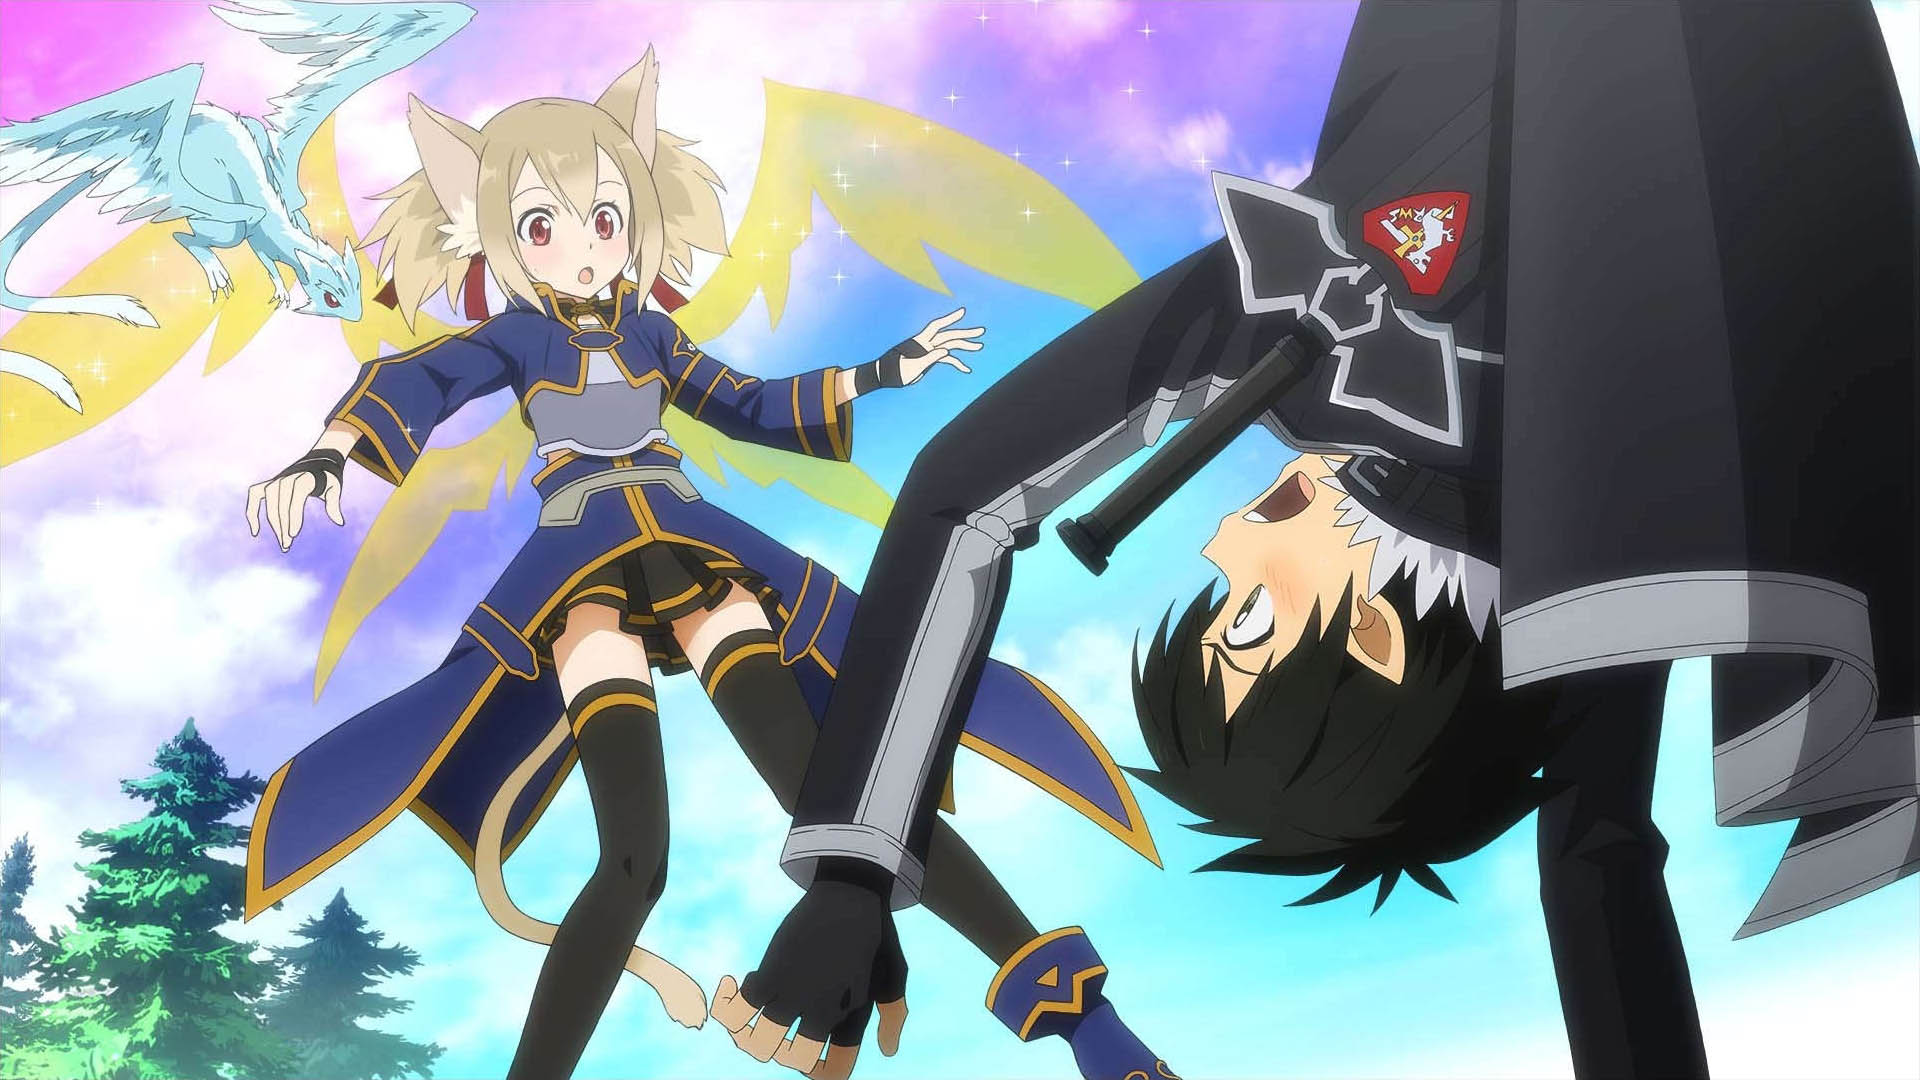 Basically The Plot Of Game Is Two Online Worlds Are Being Merged By A Big Enemy This Needs To Be Stopped While Pixie Daughter Kirito And